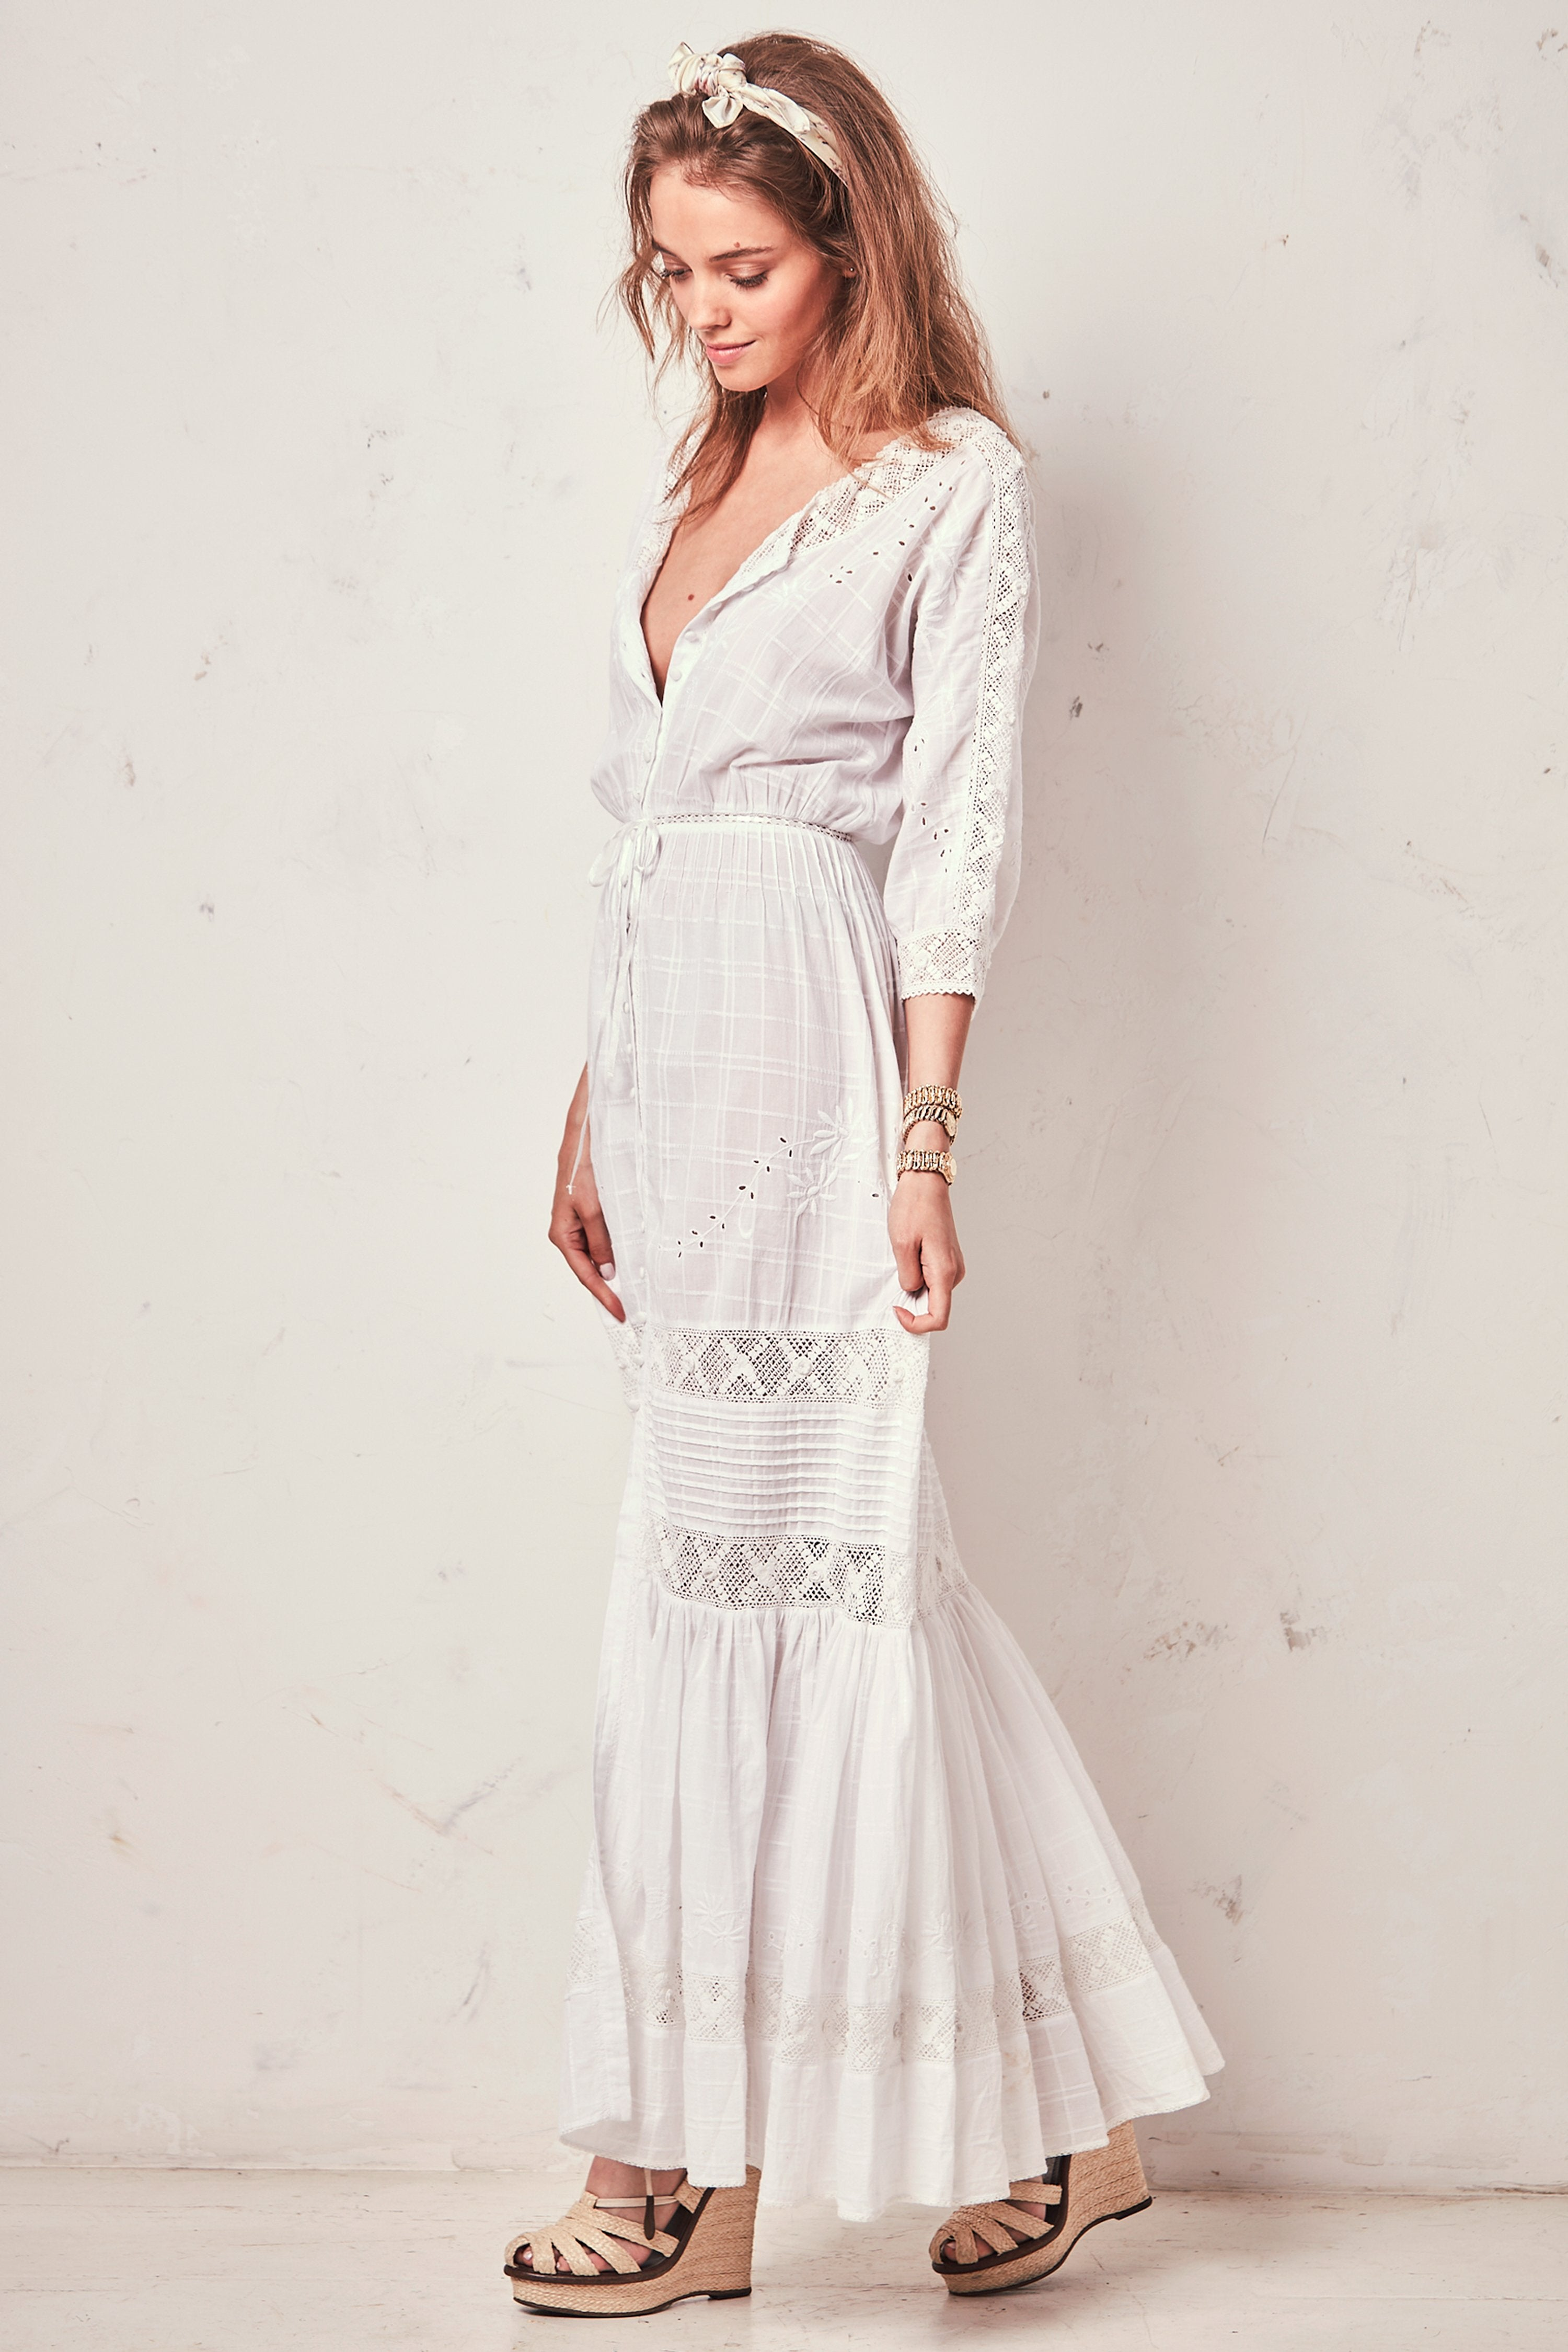 Callan Dress - White , LOVE SHACK FANCY - Moda Boheme